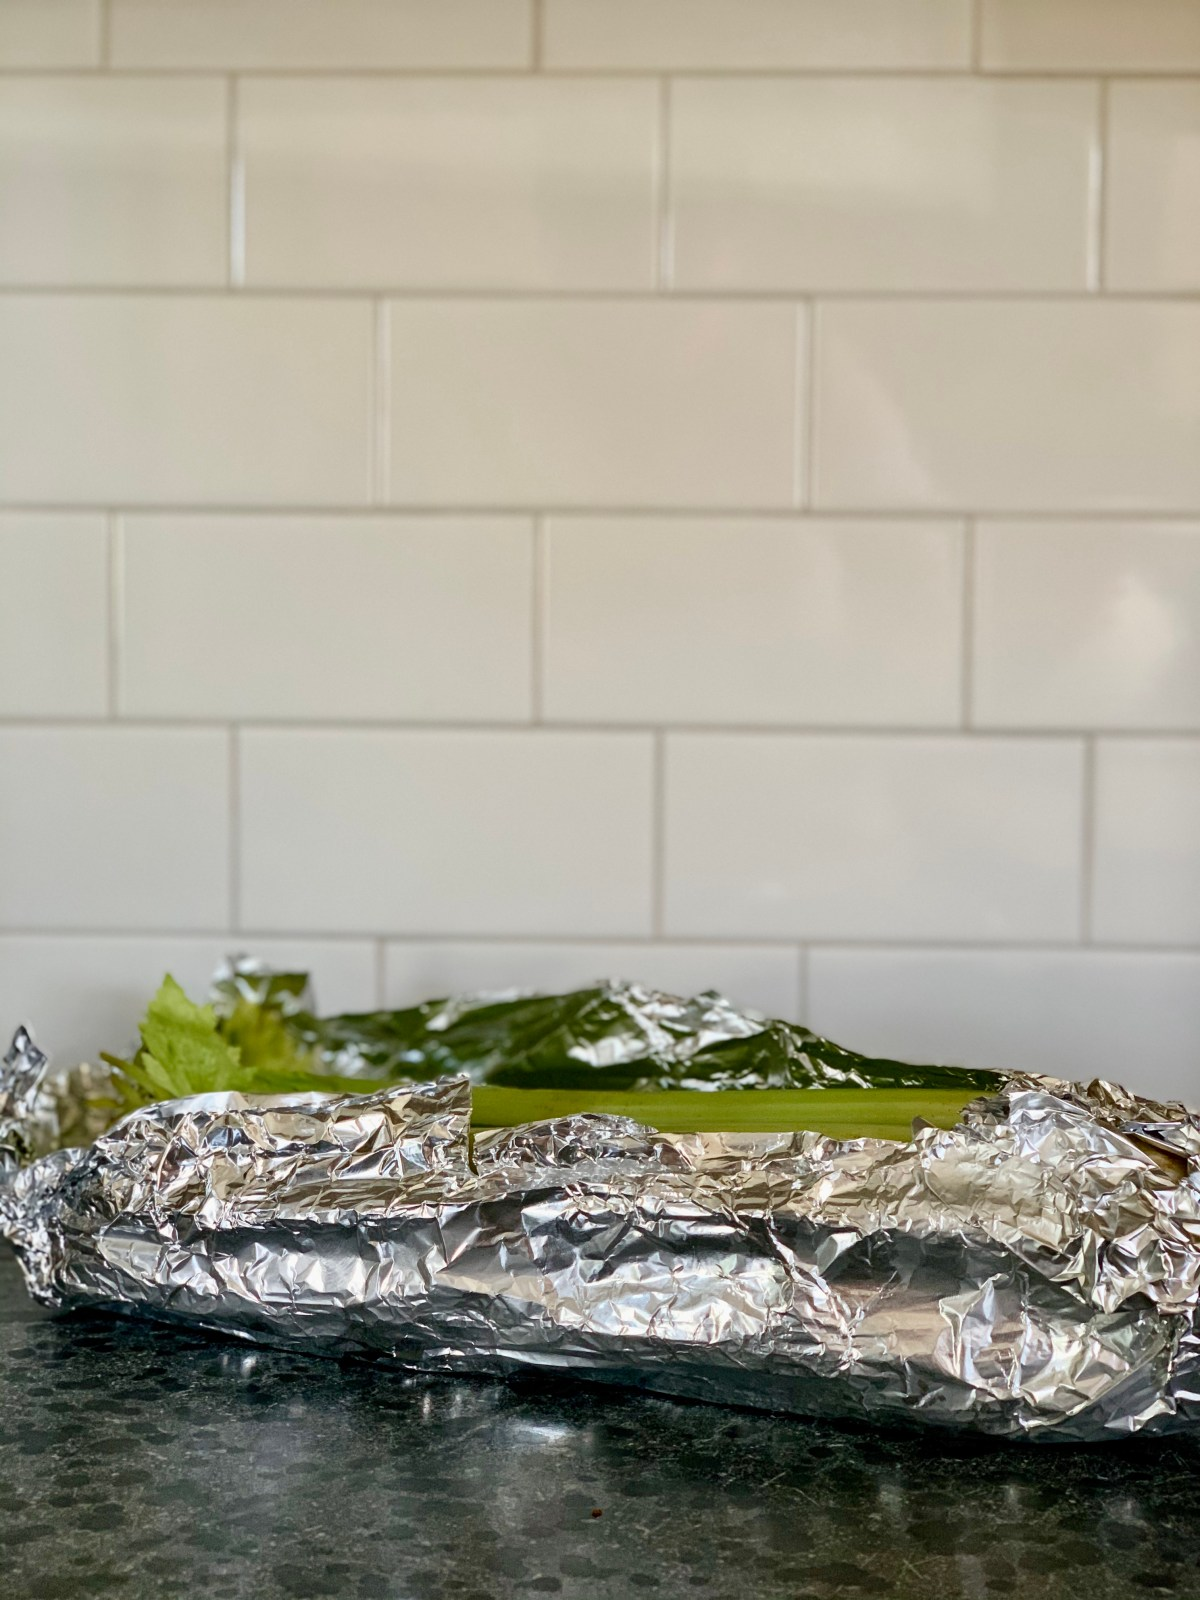 Celery wrapped in foil.